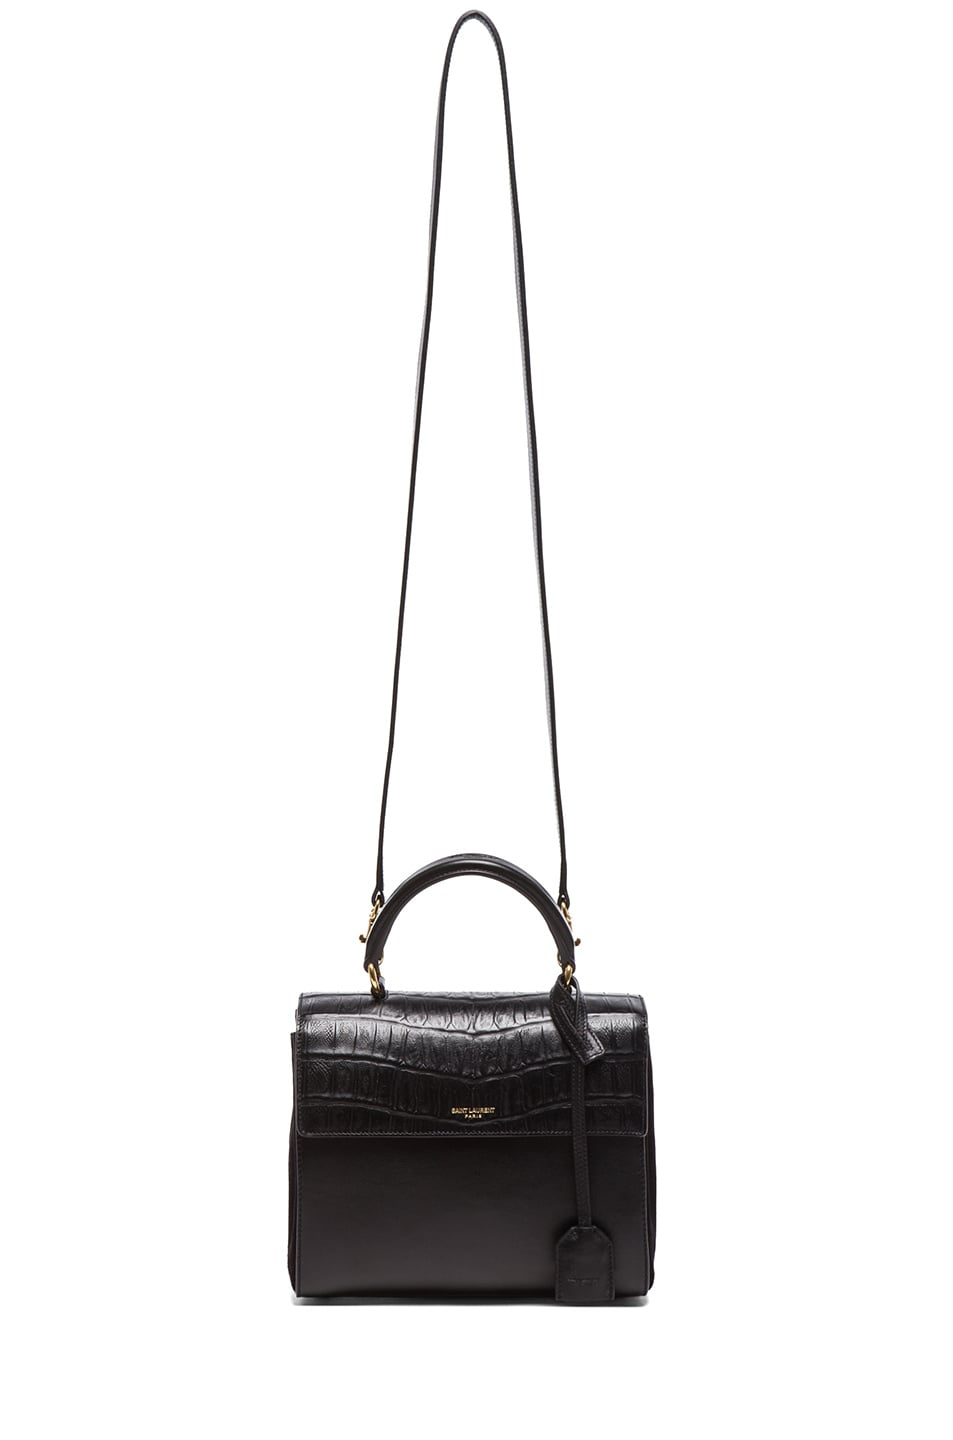 Saint Laurent Small Moujik Bag in Black | FWRD